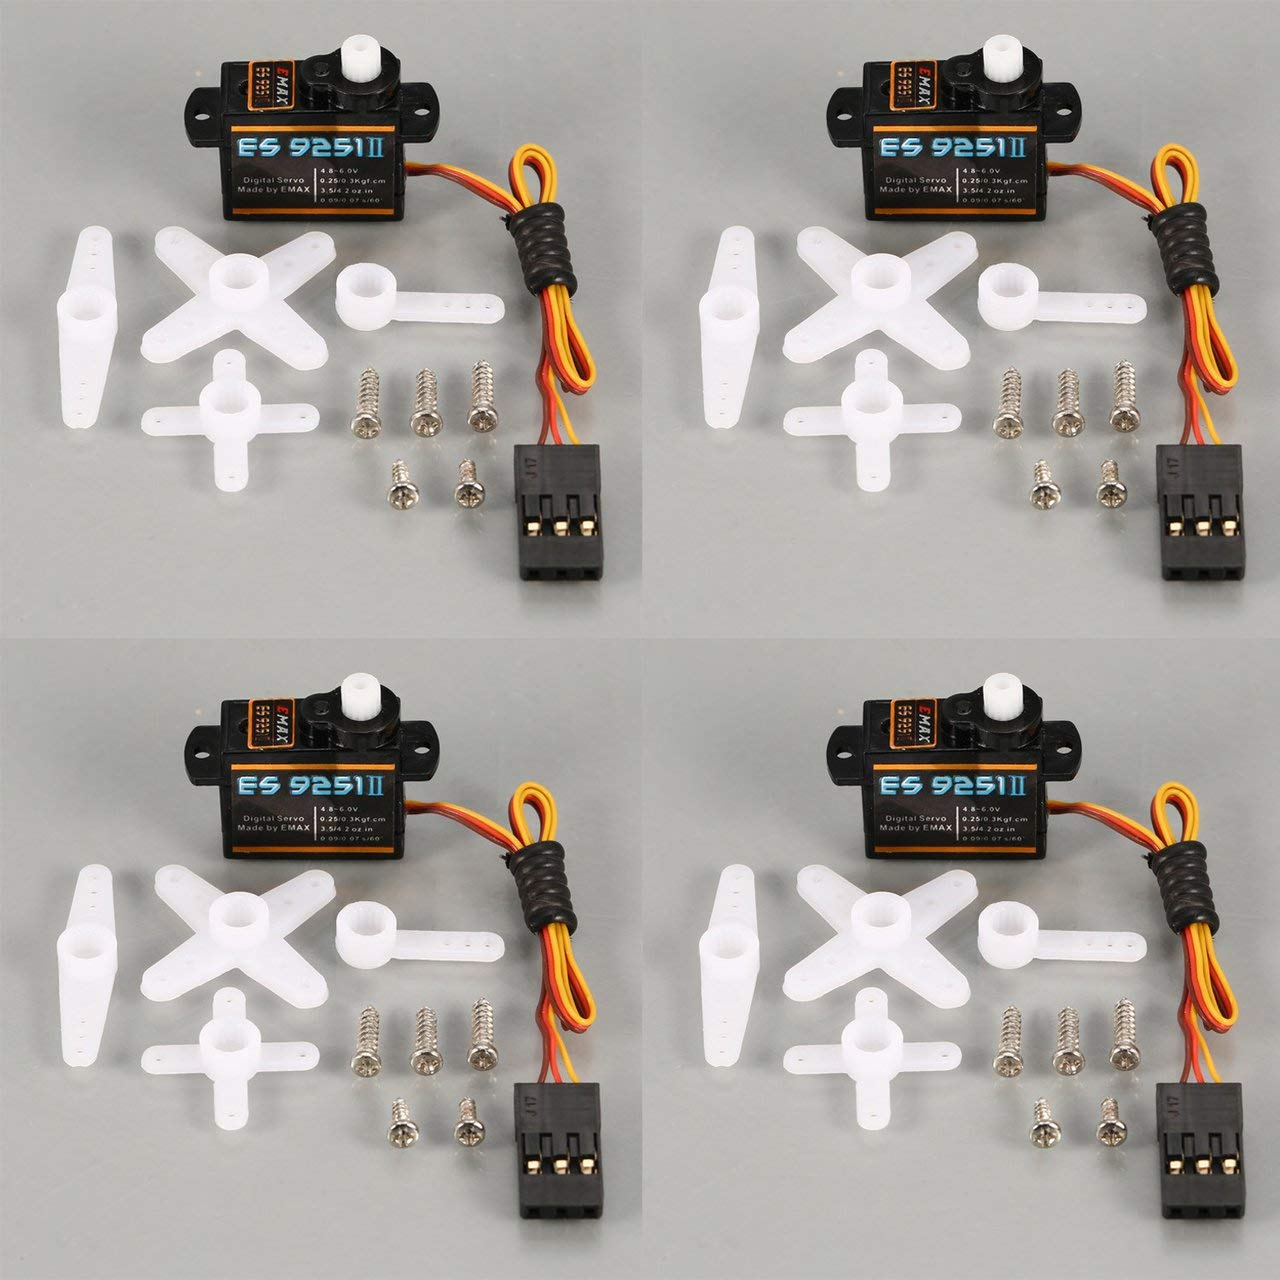 [해외]4PCS EMAX 디지털 플라스틱 기어 서보 ES9251 II 4.8-6.0 V 0.3 kg0.09 0.07 초60도 RC FPV 고정 날개 비행기 / 4PCS Emax Digital Plastic Gear servo es9251 II 4.8-6.0 v 0.3 kg 0.090.07 sec60 degree RC FPV fixed wing airplane